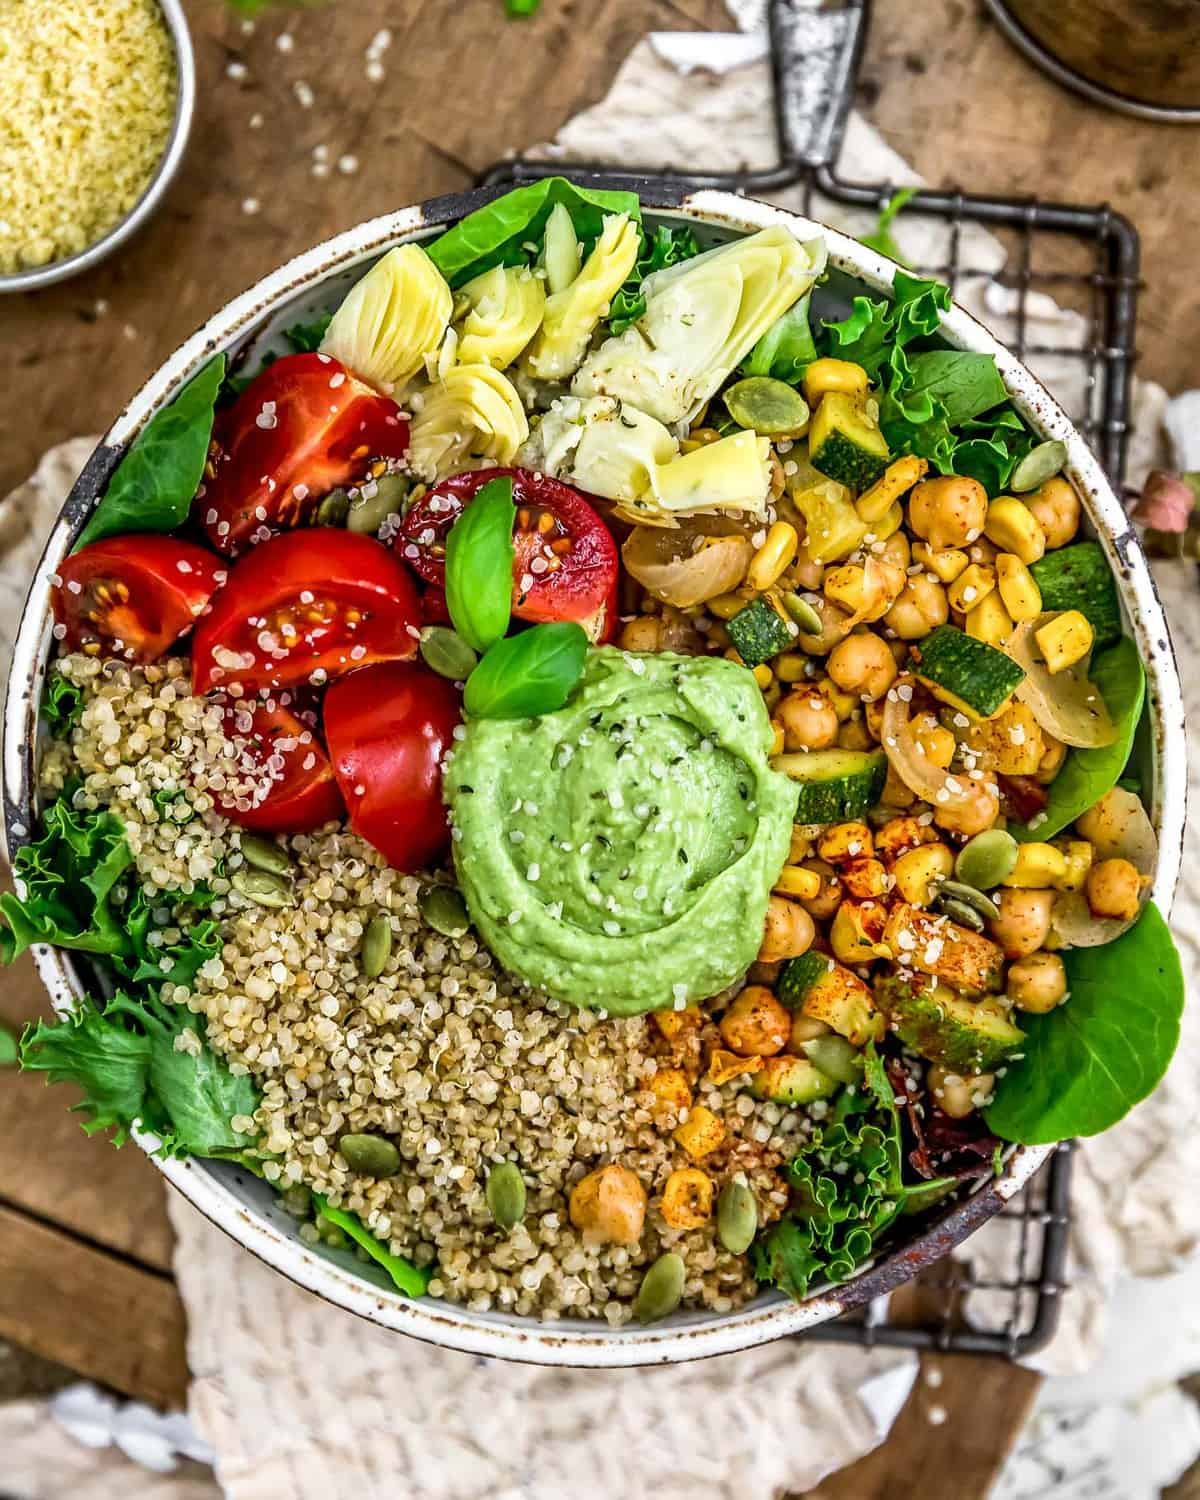 Vegan Oil Free Avocado Pesto in a buddha bowl